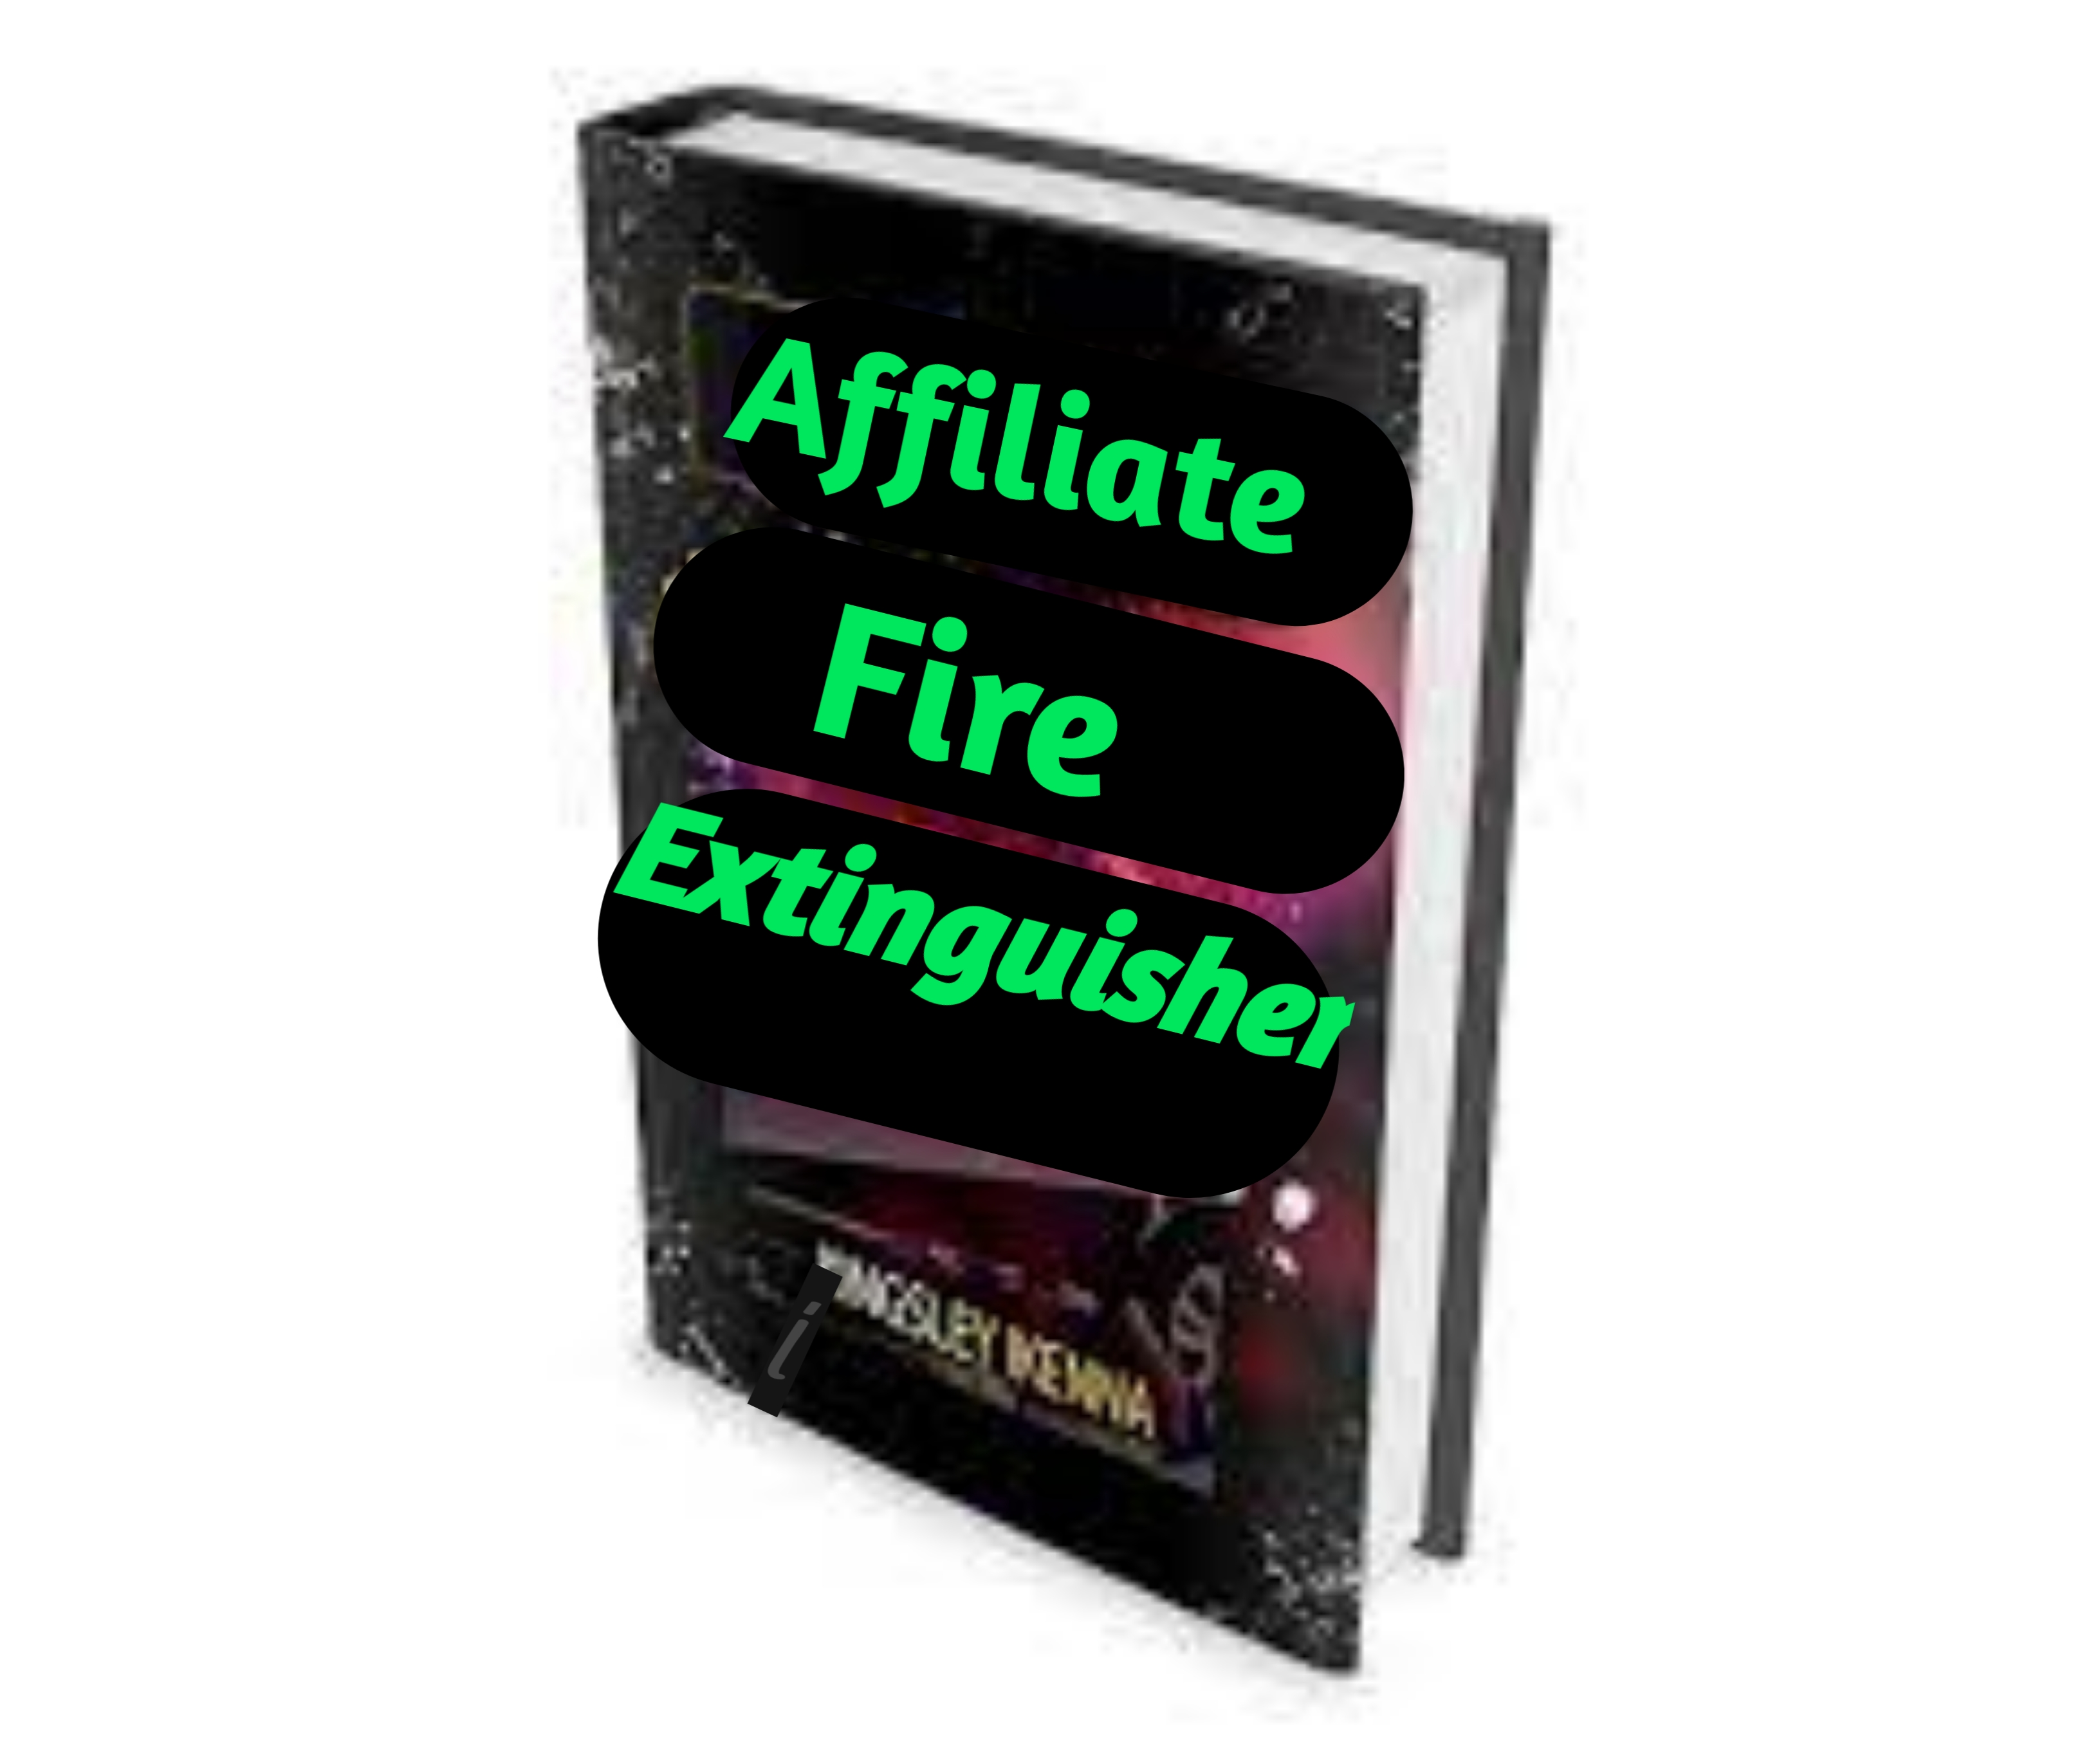 Affiliate fire extinguisher software for Affiliate, market